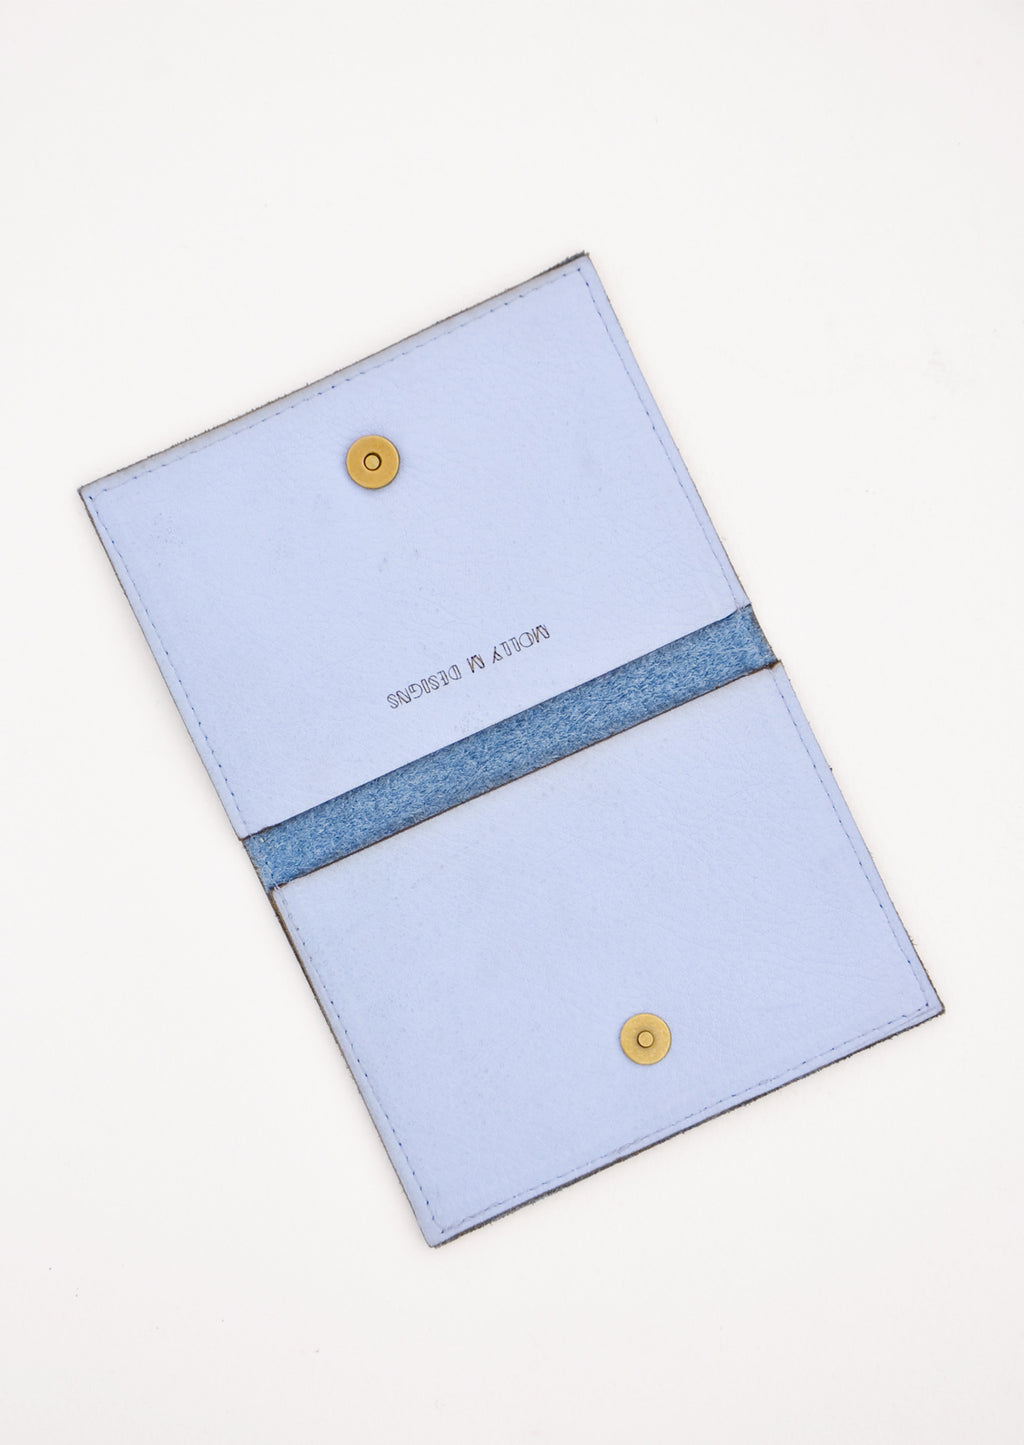 2: Slim blue leather wallet with two interior slip pockets that folds closed with a snap, shown open in